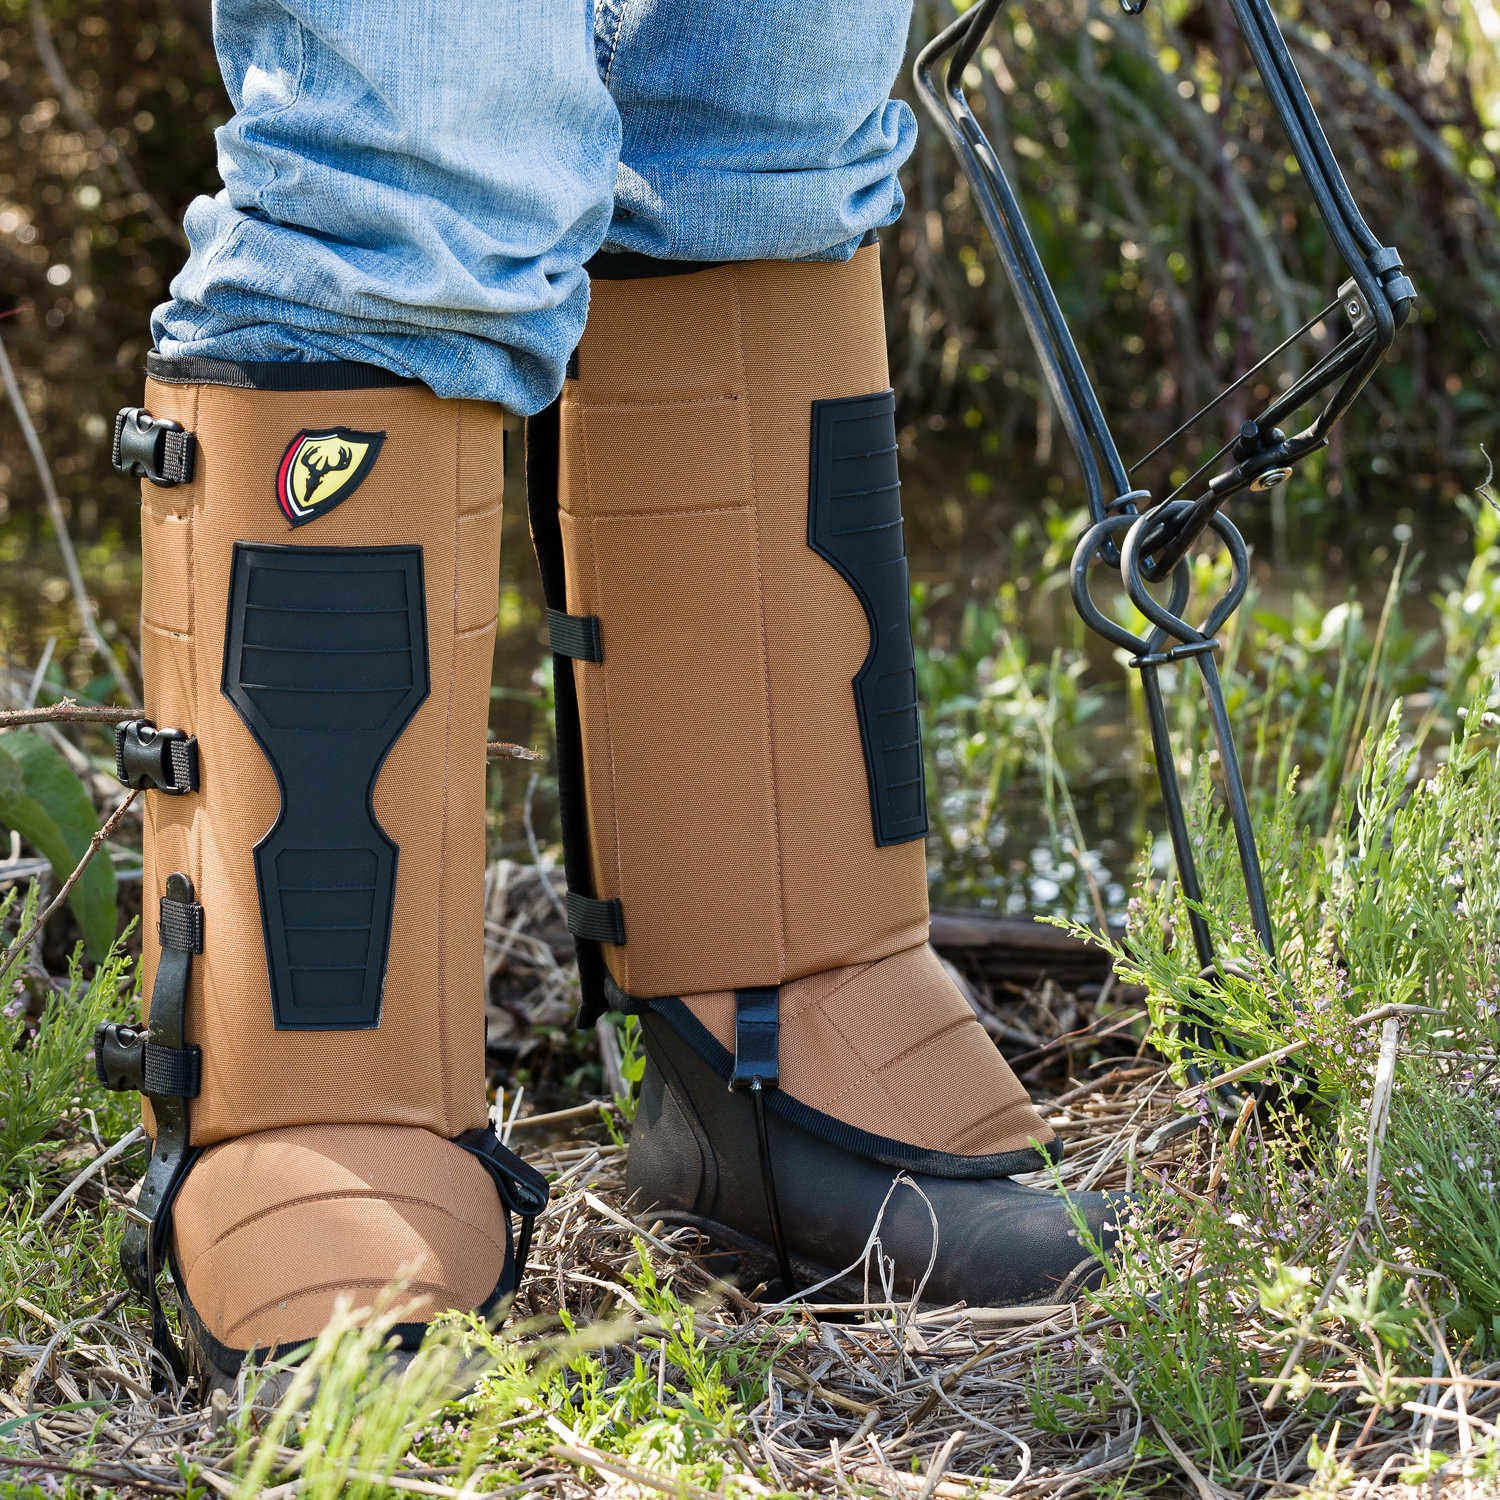 Scentblocker Diamondback Premium Snake Gaiters, Large